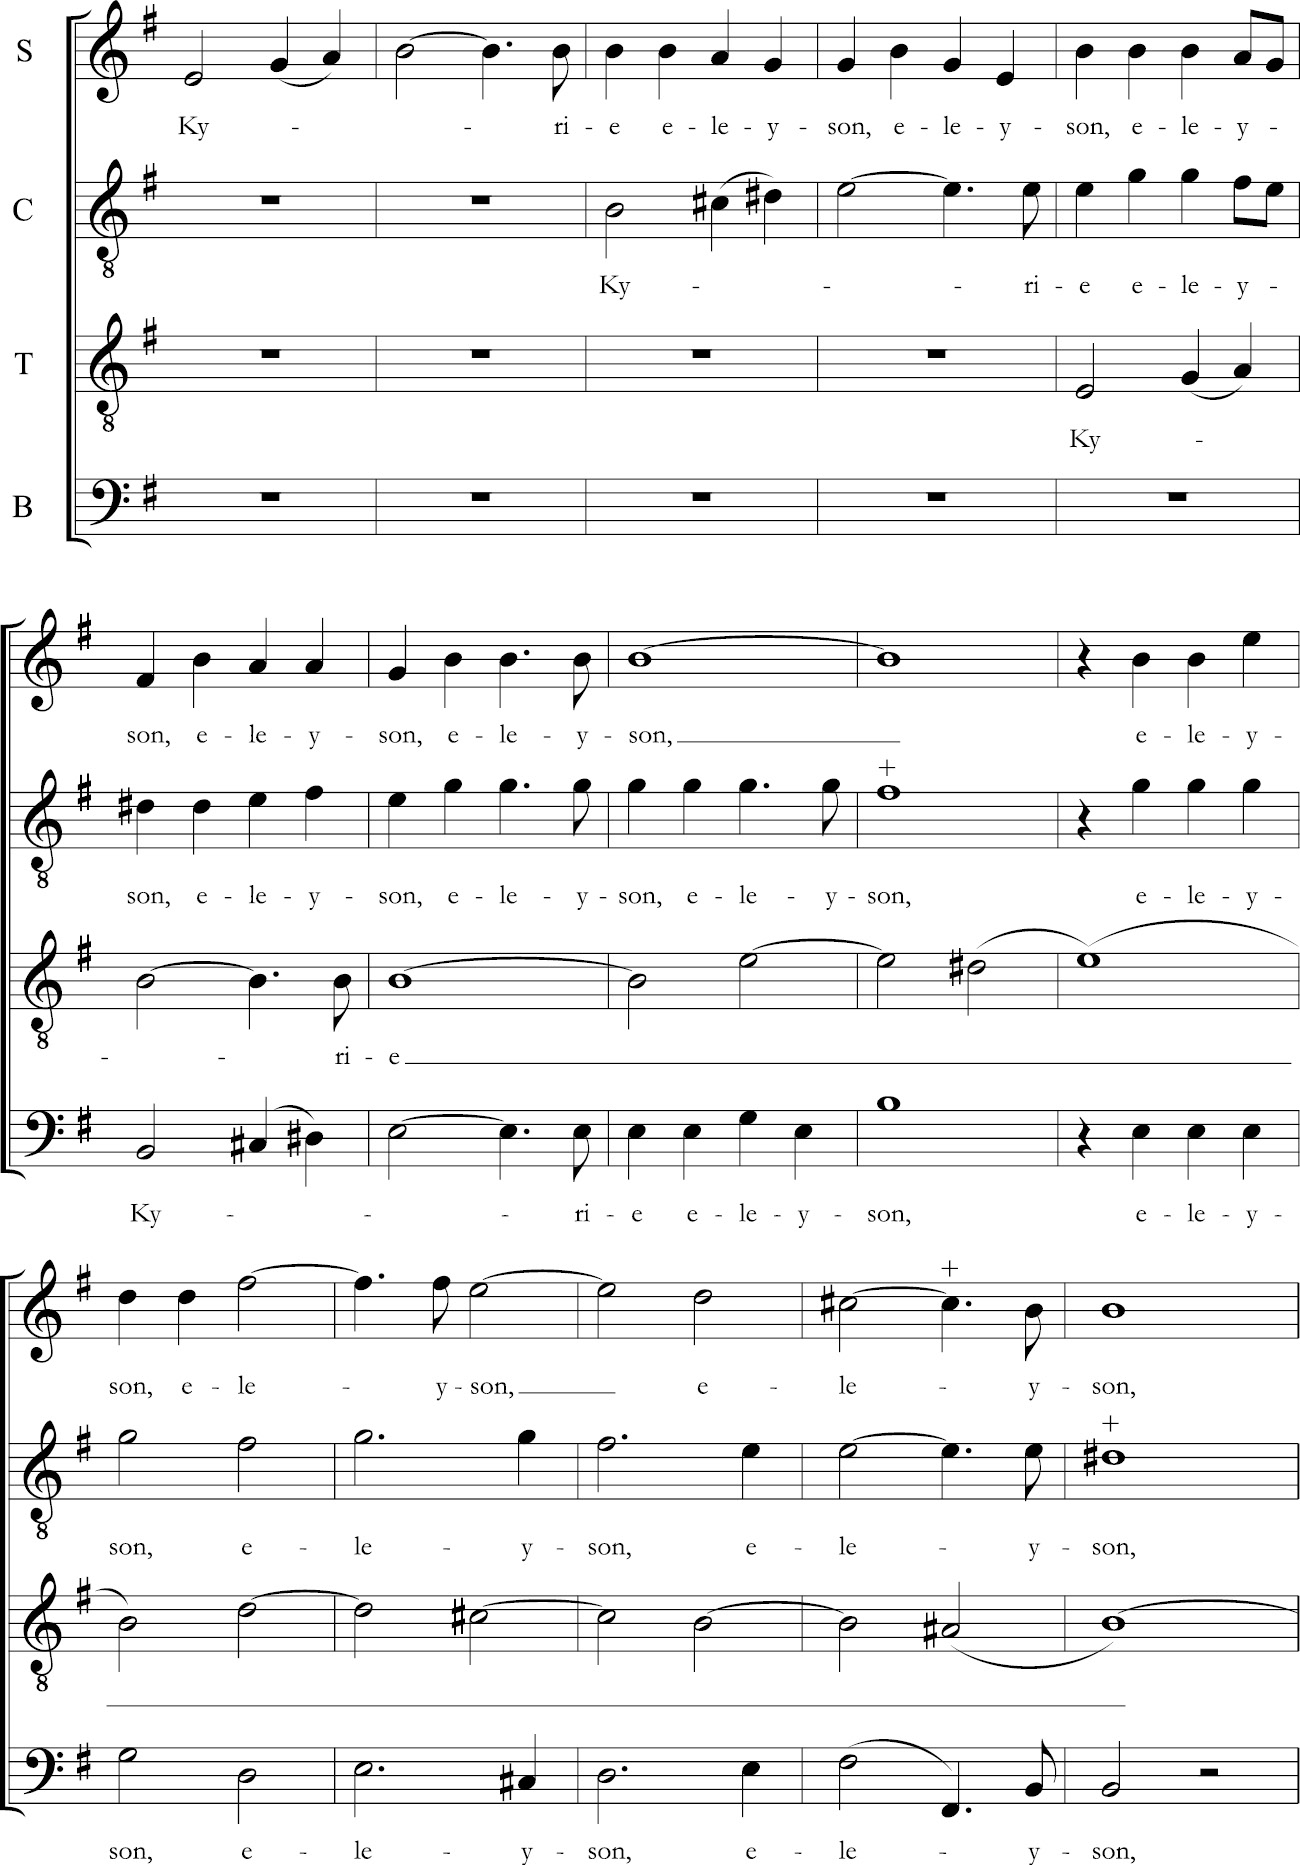 Stylistic Considerations (Chapter 6) - The Polyphonic Mass